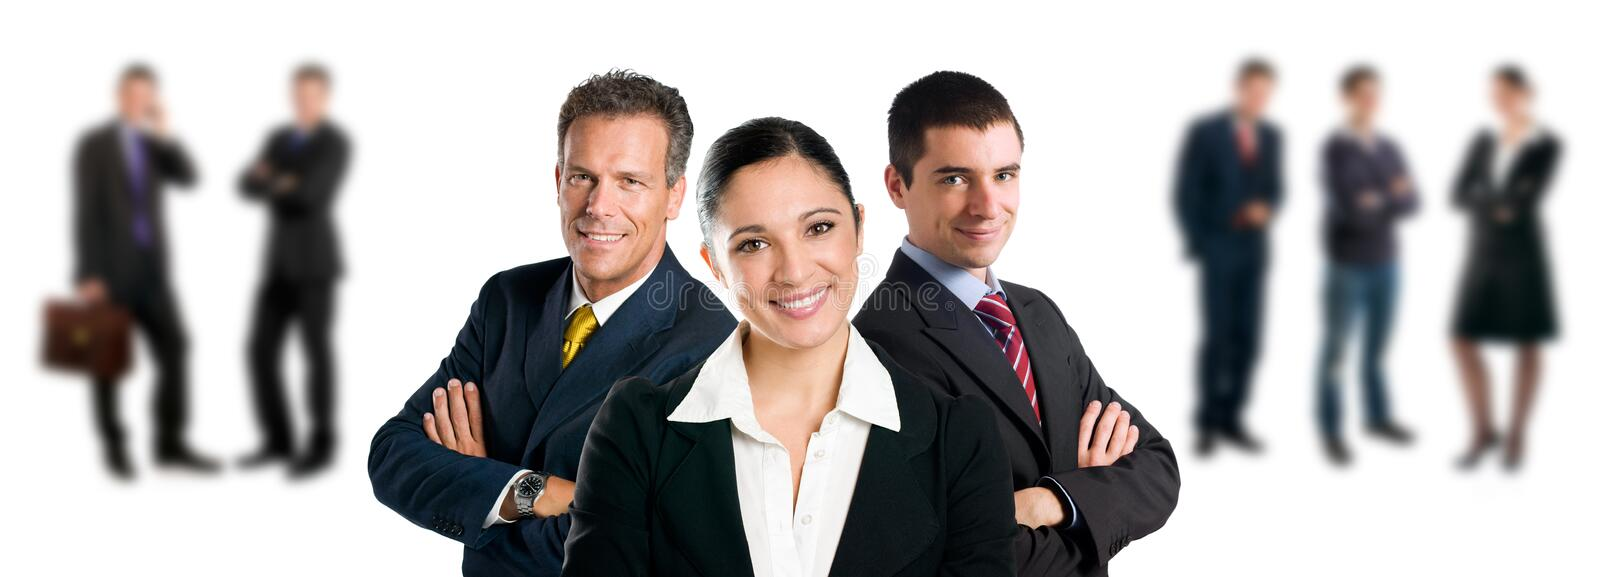 Business team with colleagues royalty free stock images